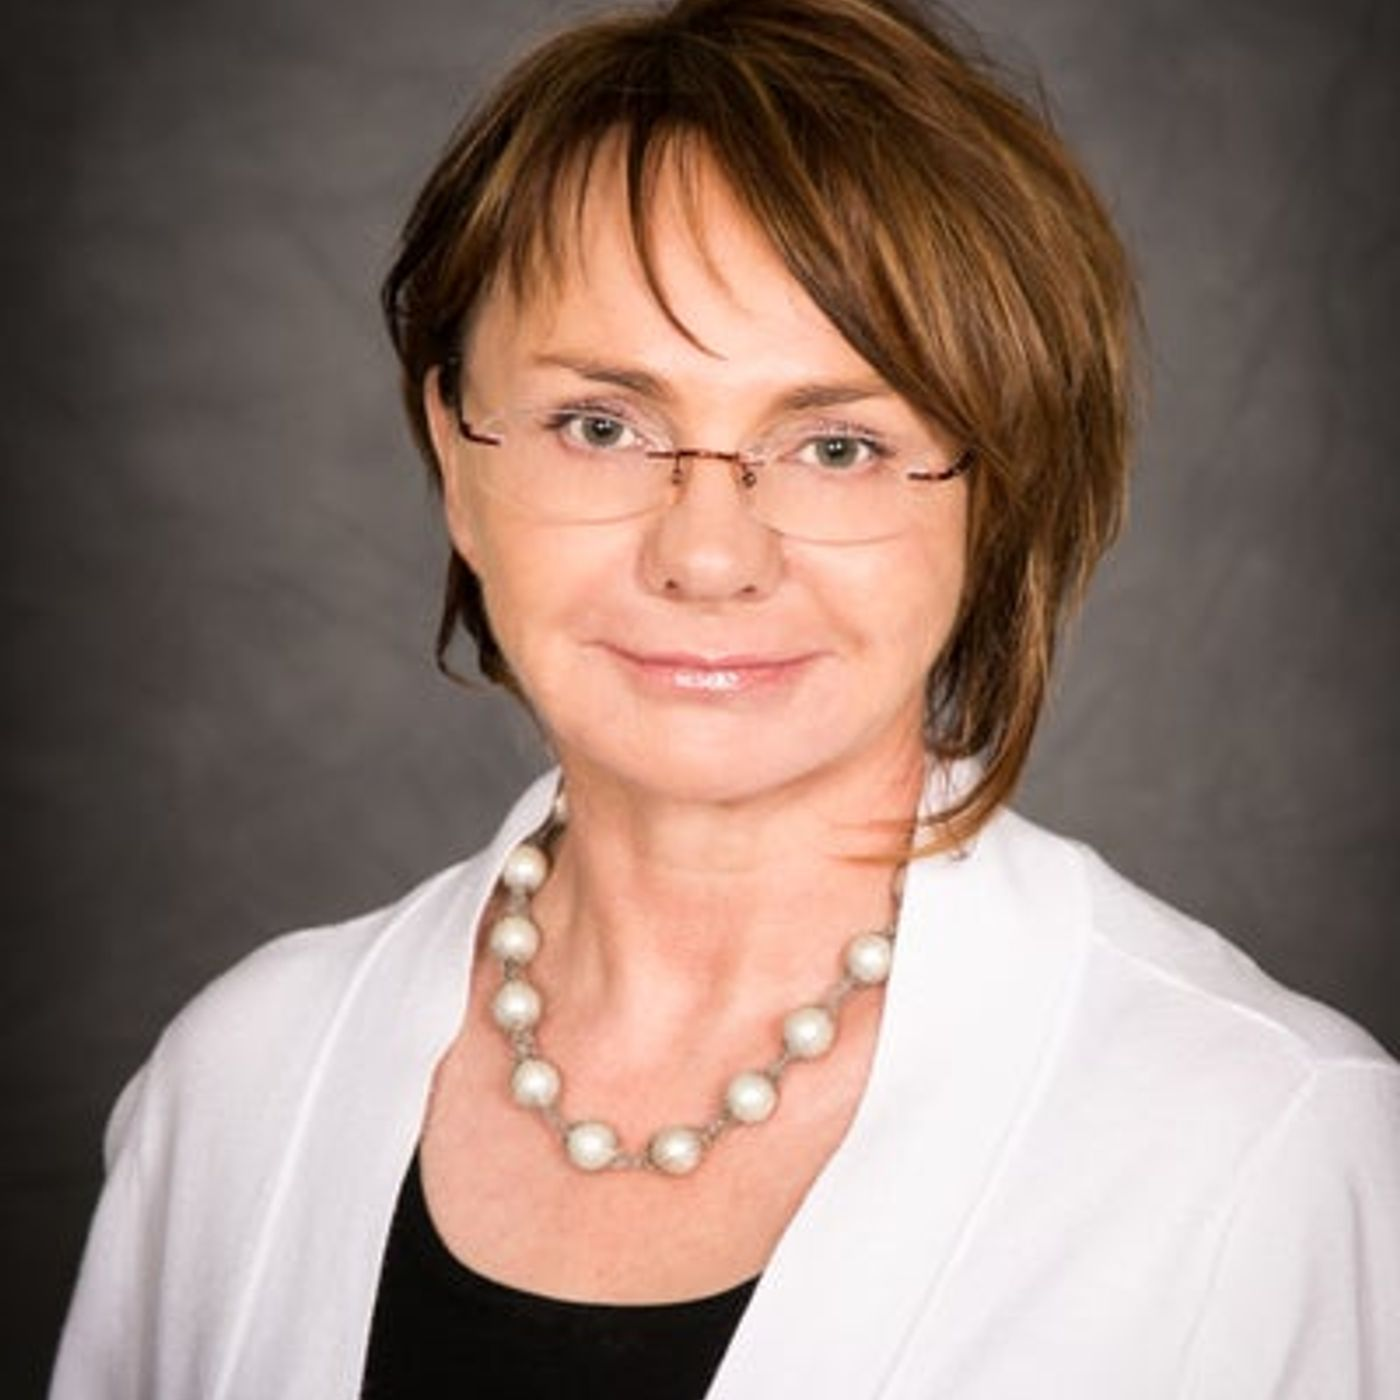 Founder/CEO of Visage Laser and Skin Care  Dr. Katarzyna Tesmer is my very special guest!